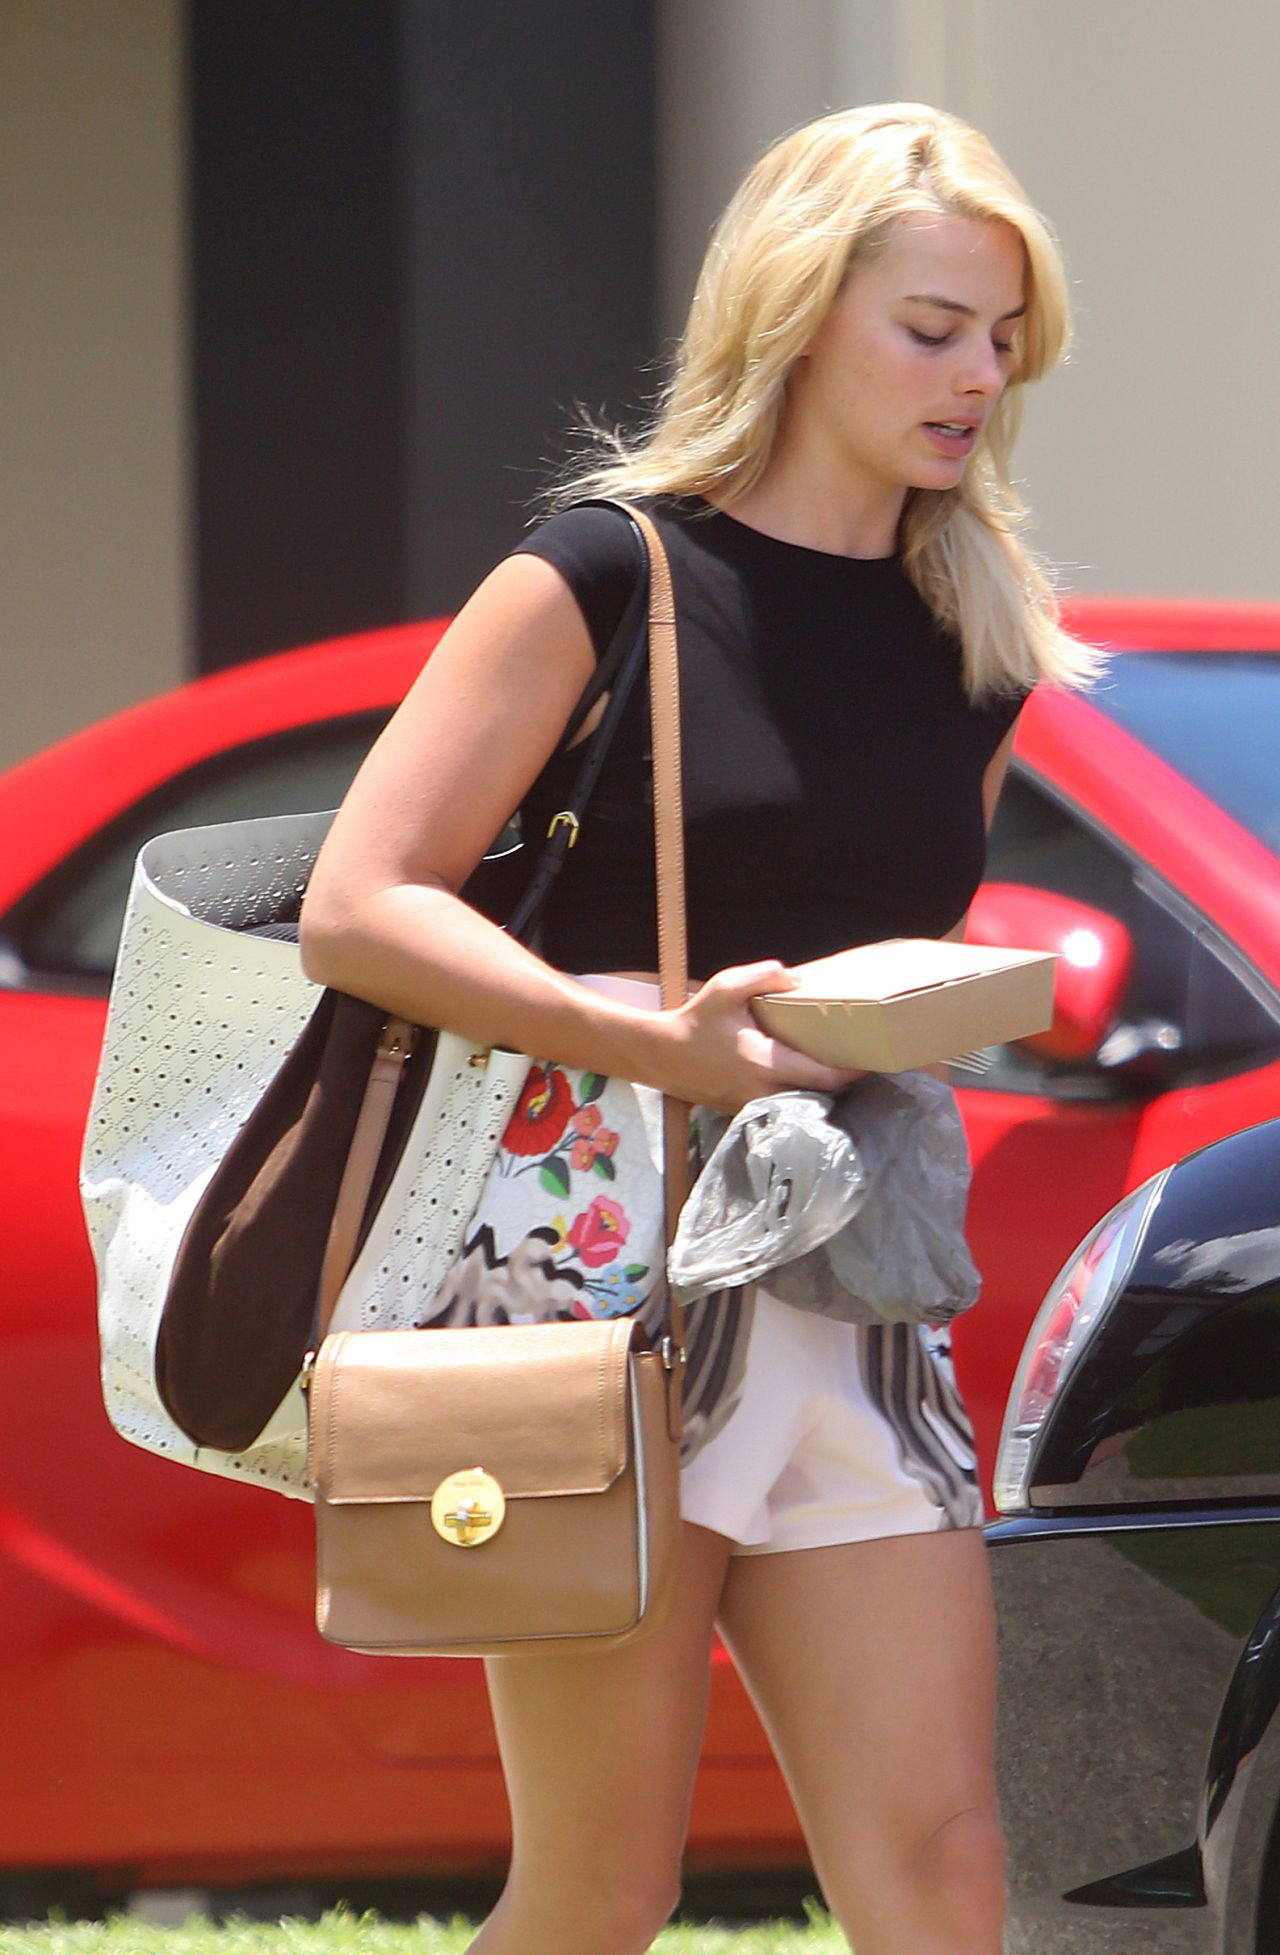 Margot Robbie In Shorts Leaving The Gym In Australia